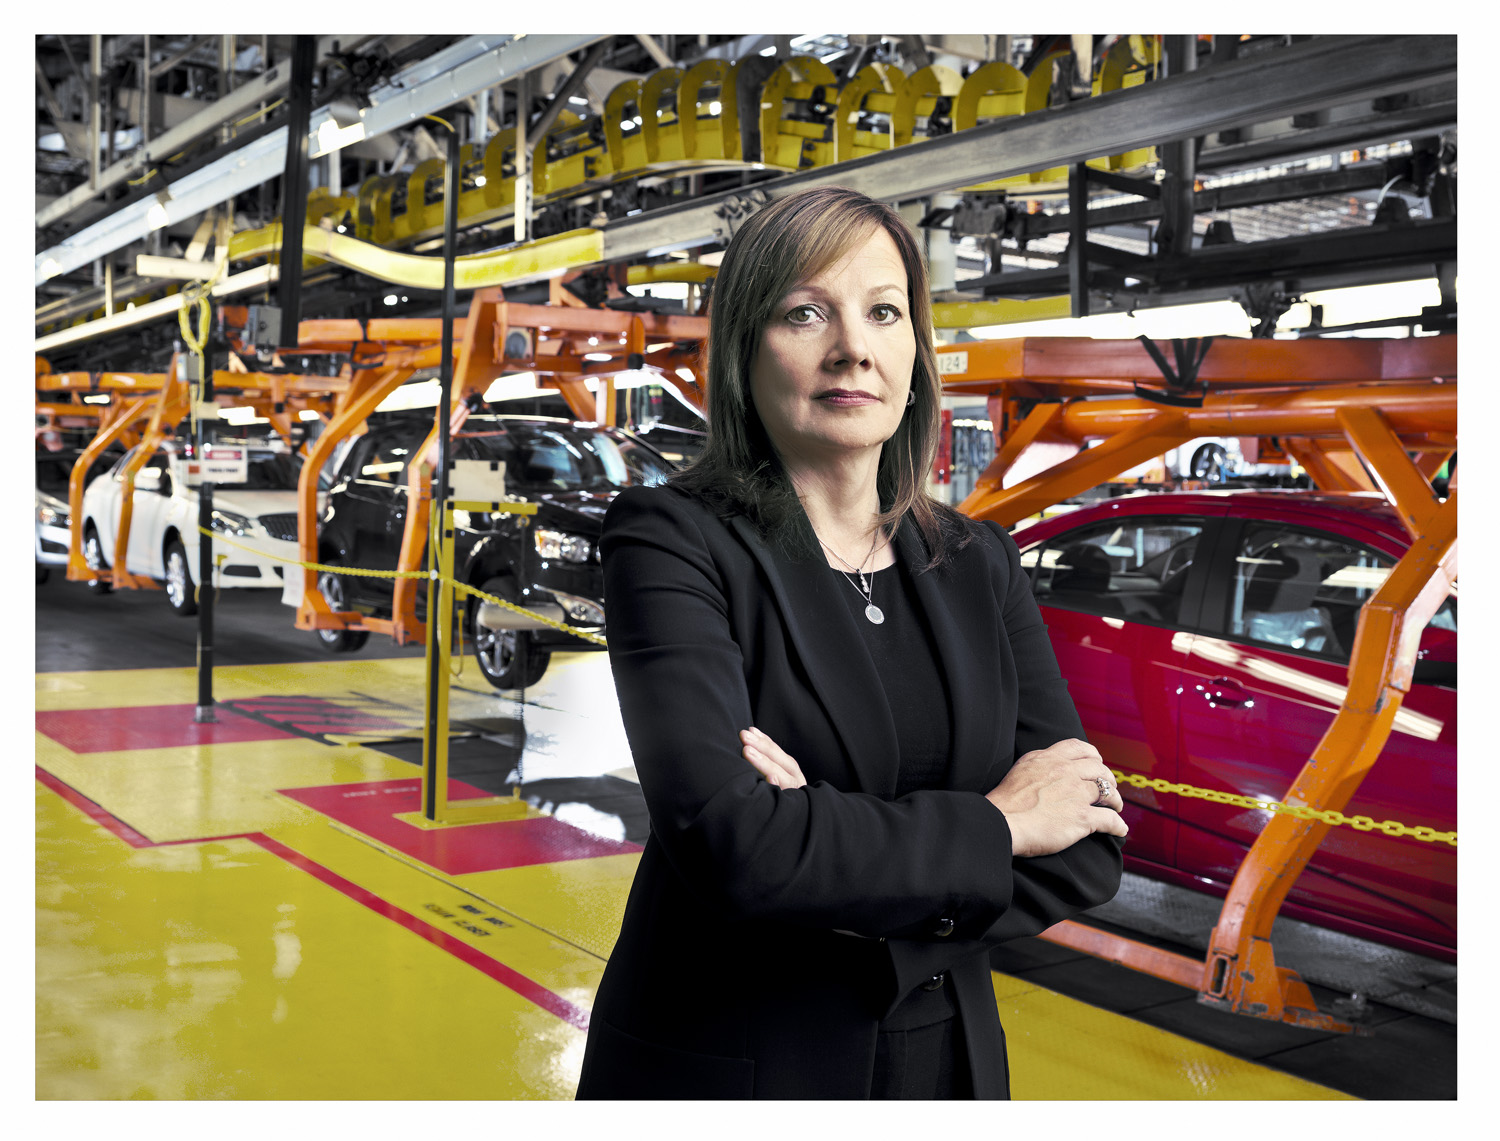 Barra, a former plant manager, at GM's Orion Assembly in Lake Orion, Michigan.